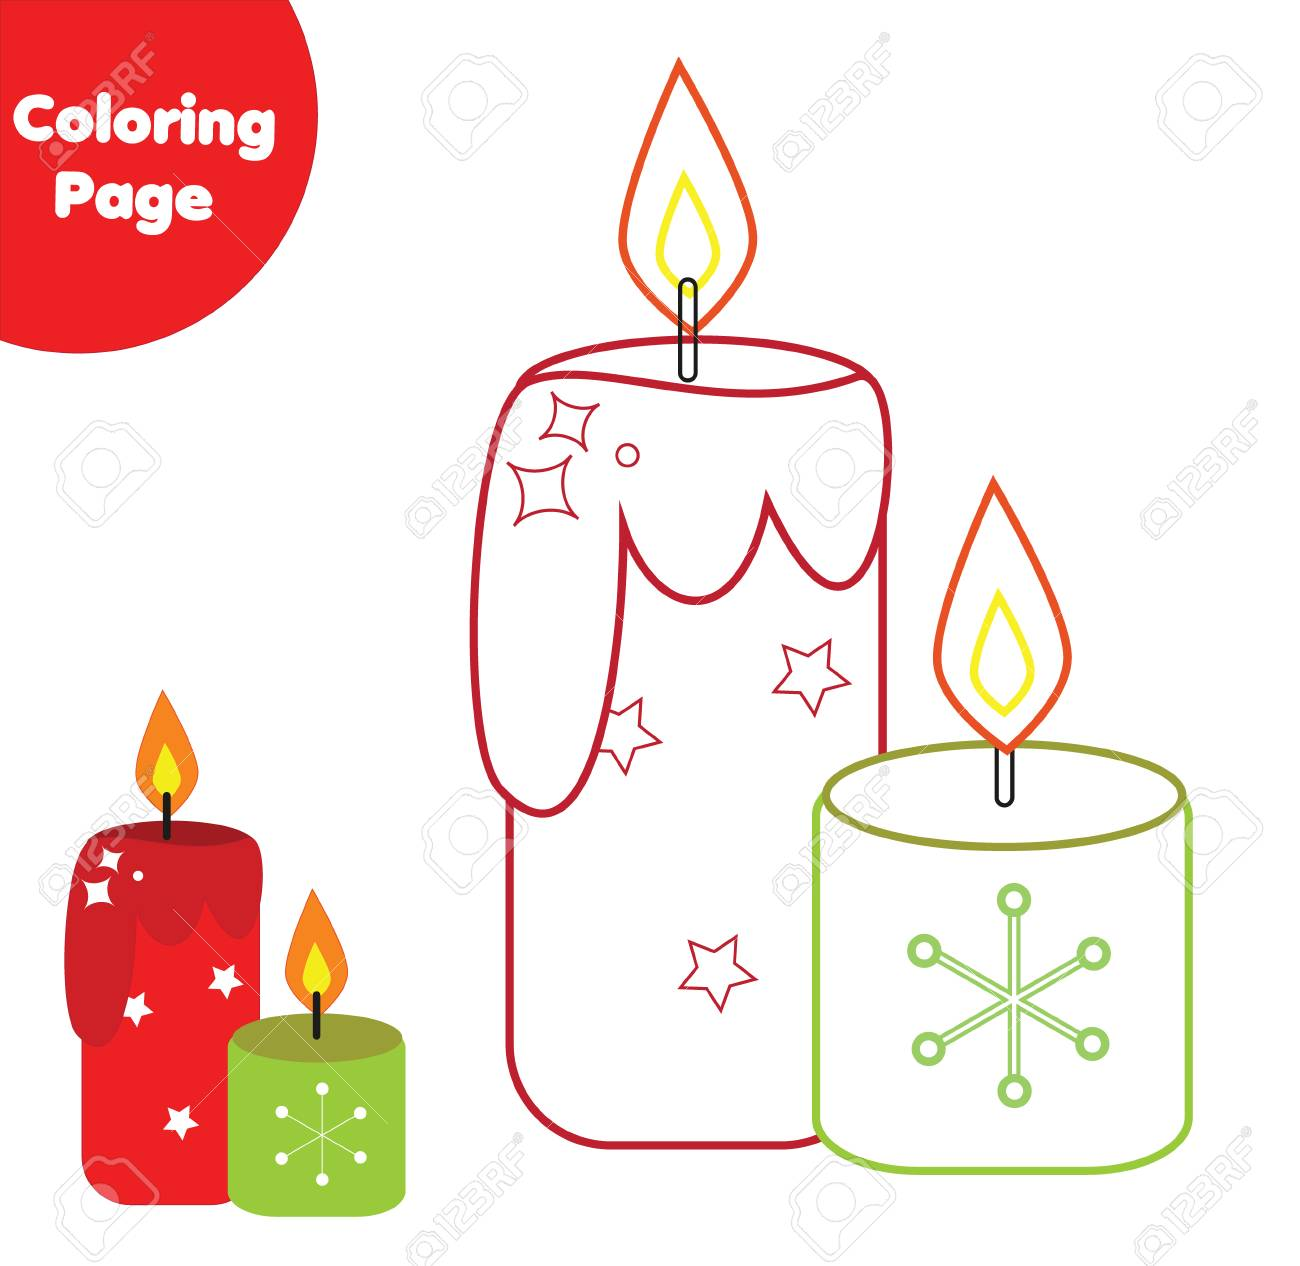 picture relating to Printable Candles referred to as Coloring site. Informative recreation for youngsters. Colour candles